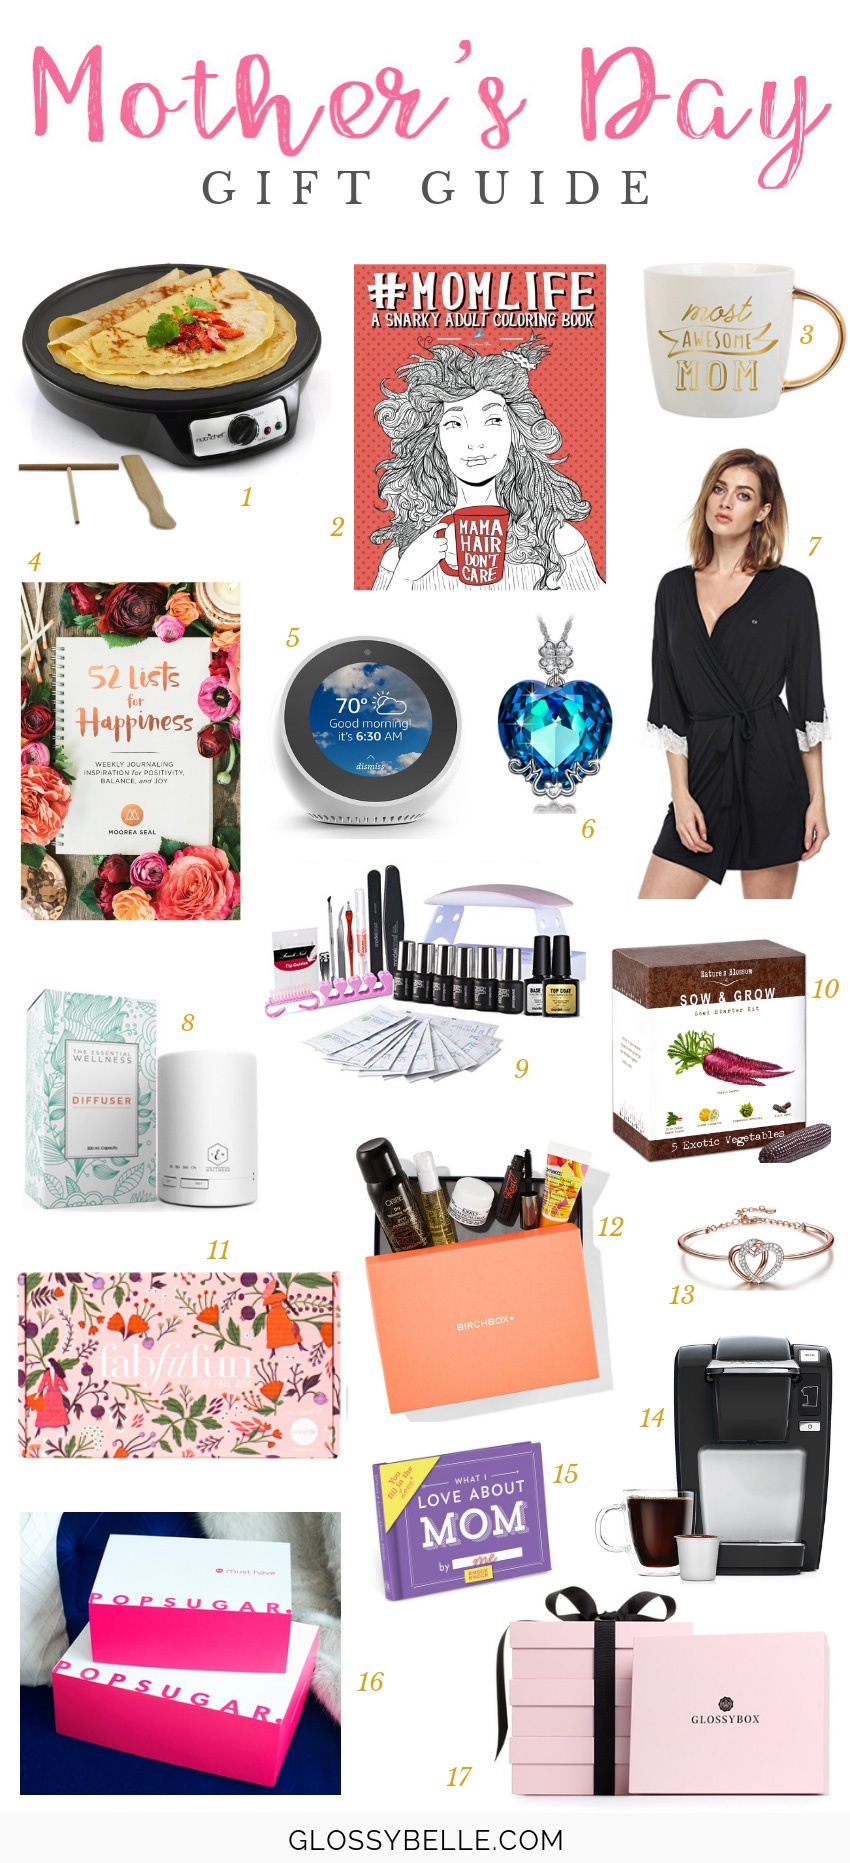 With Mother's Day just around the corner, you might be left scratching your head as to what to get your mom to show her how much she means to you. Every mom deserves the very best so here are 17 fun gift ideas you can buy to spoil your mom this Mother's Day! | mother's day gift guide | mother's day gifts | presents | gifts for moms | holiday gift guide | mum #giftguide #giftideas #giftsforher #mothersday #momlife #holidaygifts